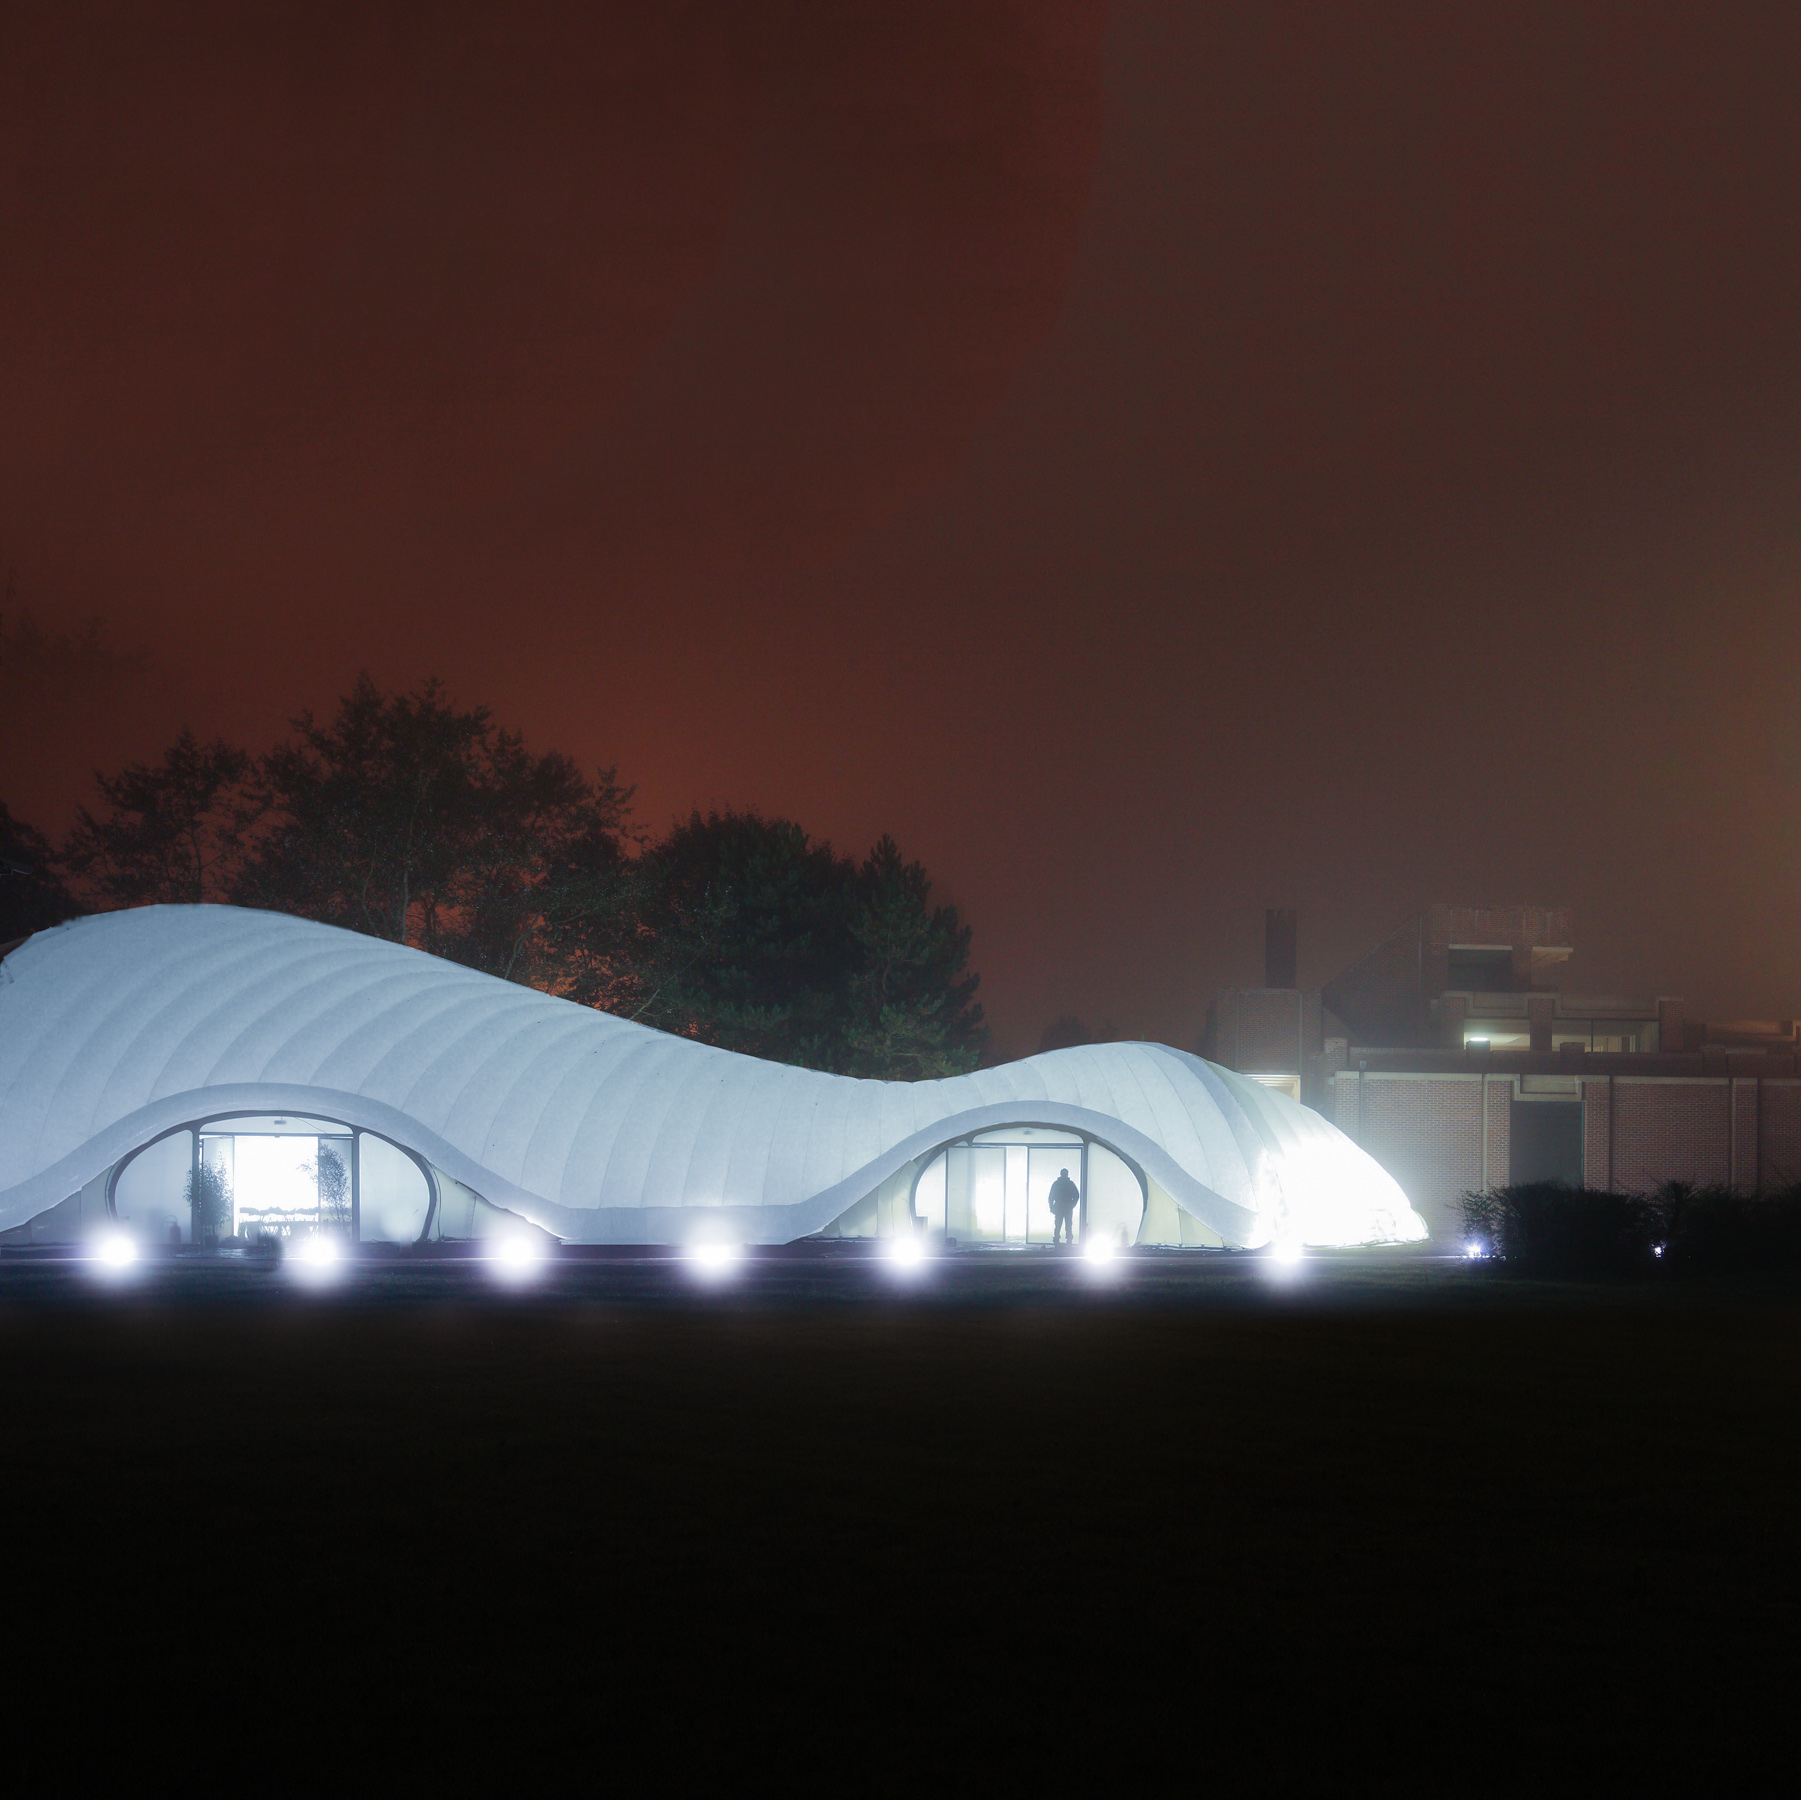 A diaphanous pavilion for the Lille Museum of Modern Art